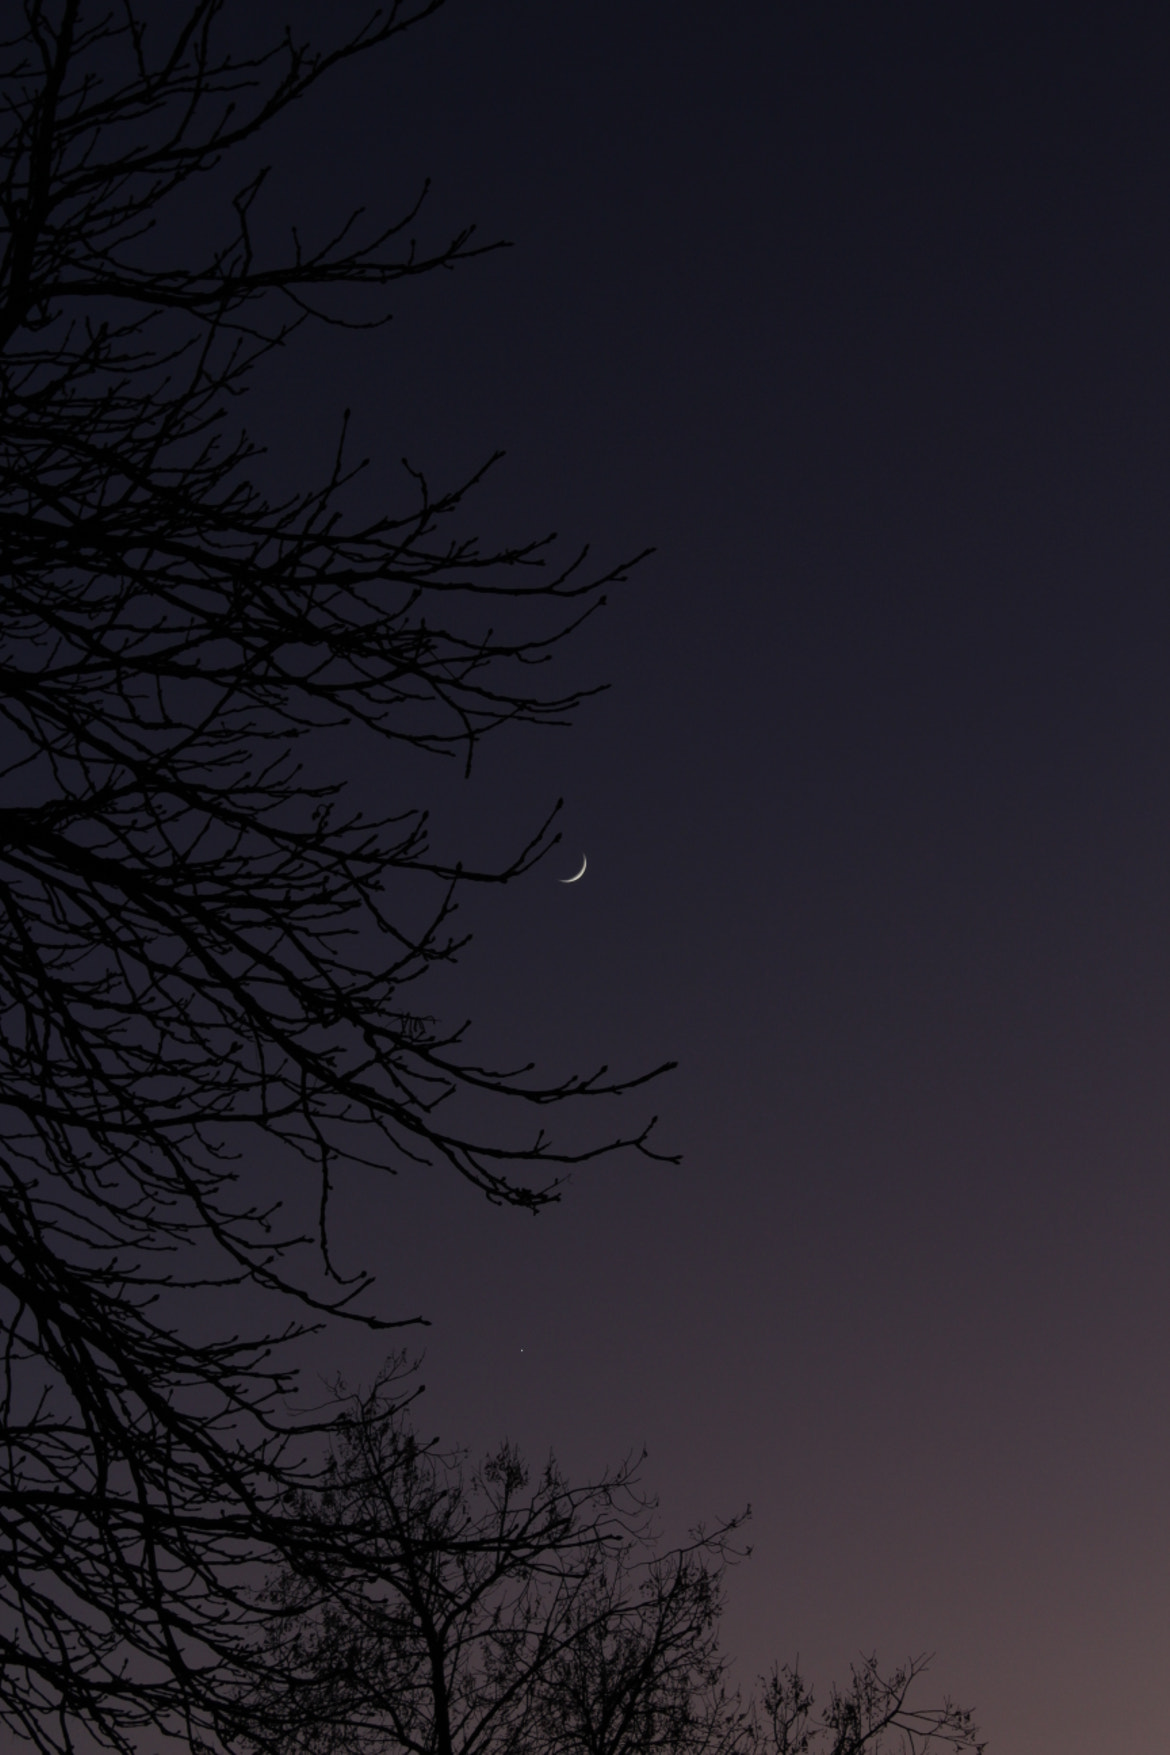 Photograph crescent at the sky by JPMT Photography on 500px